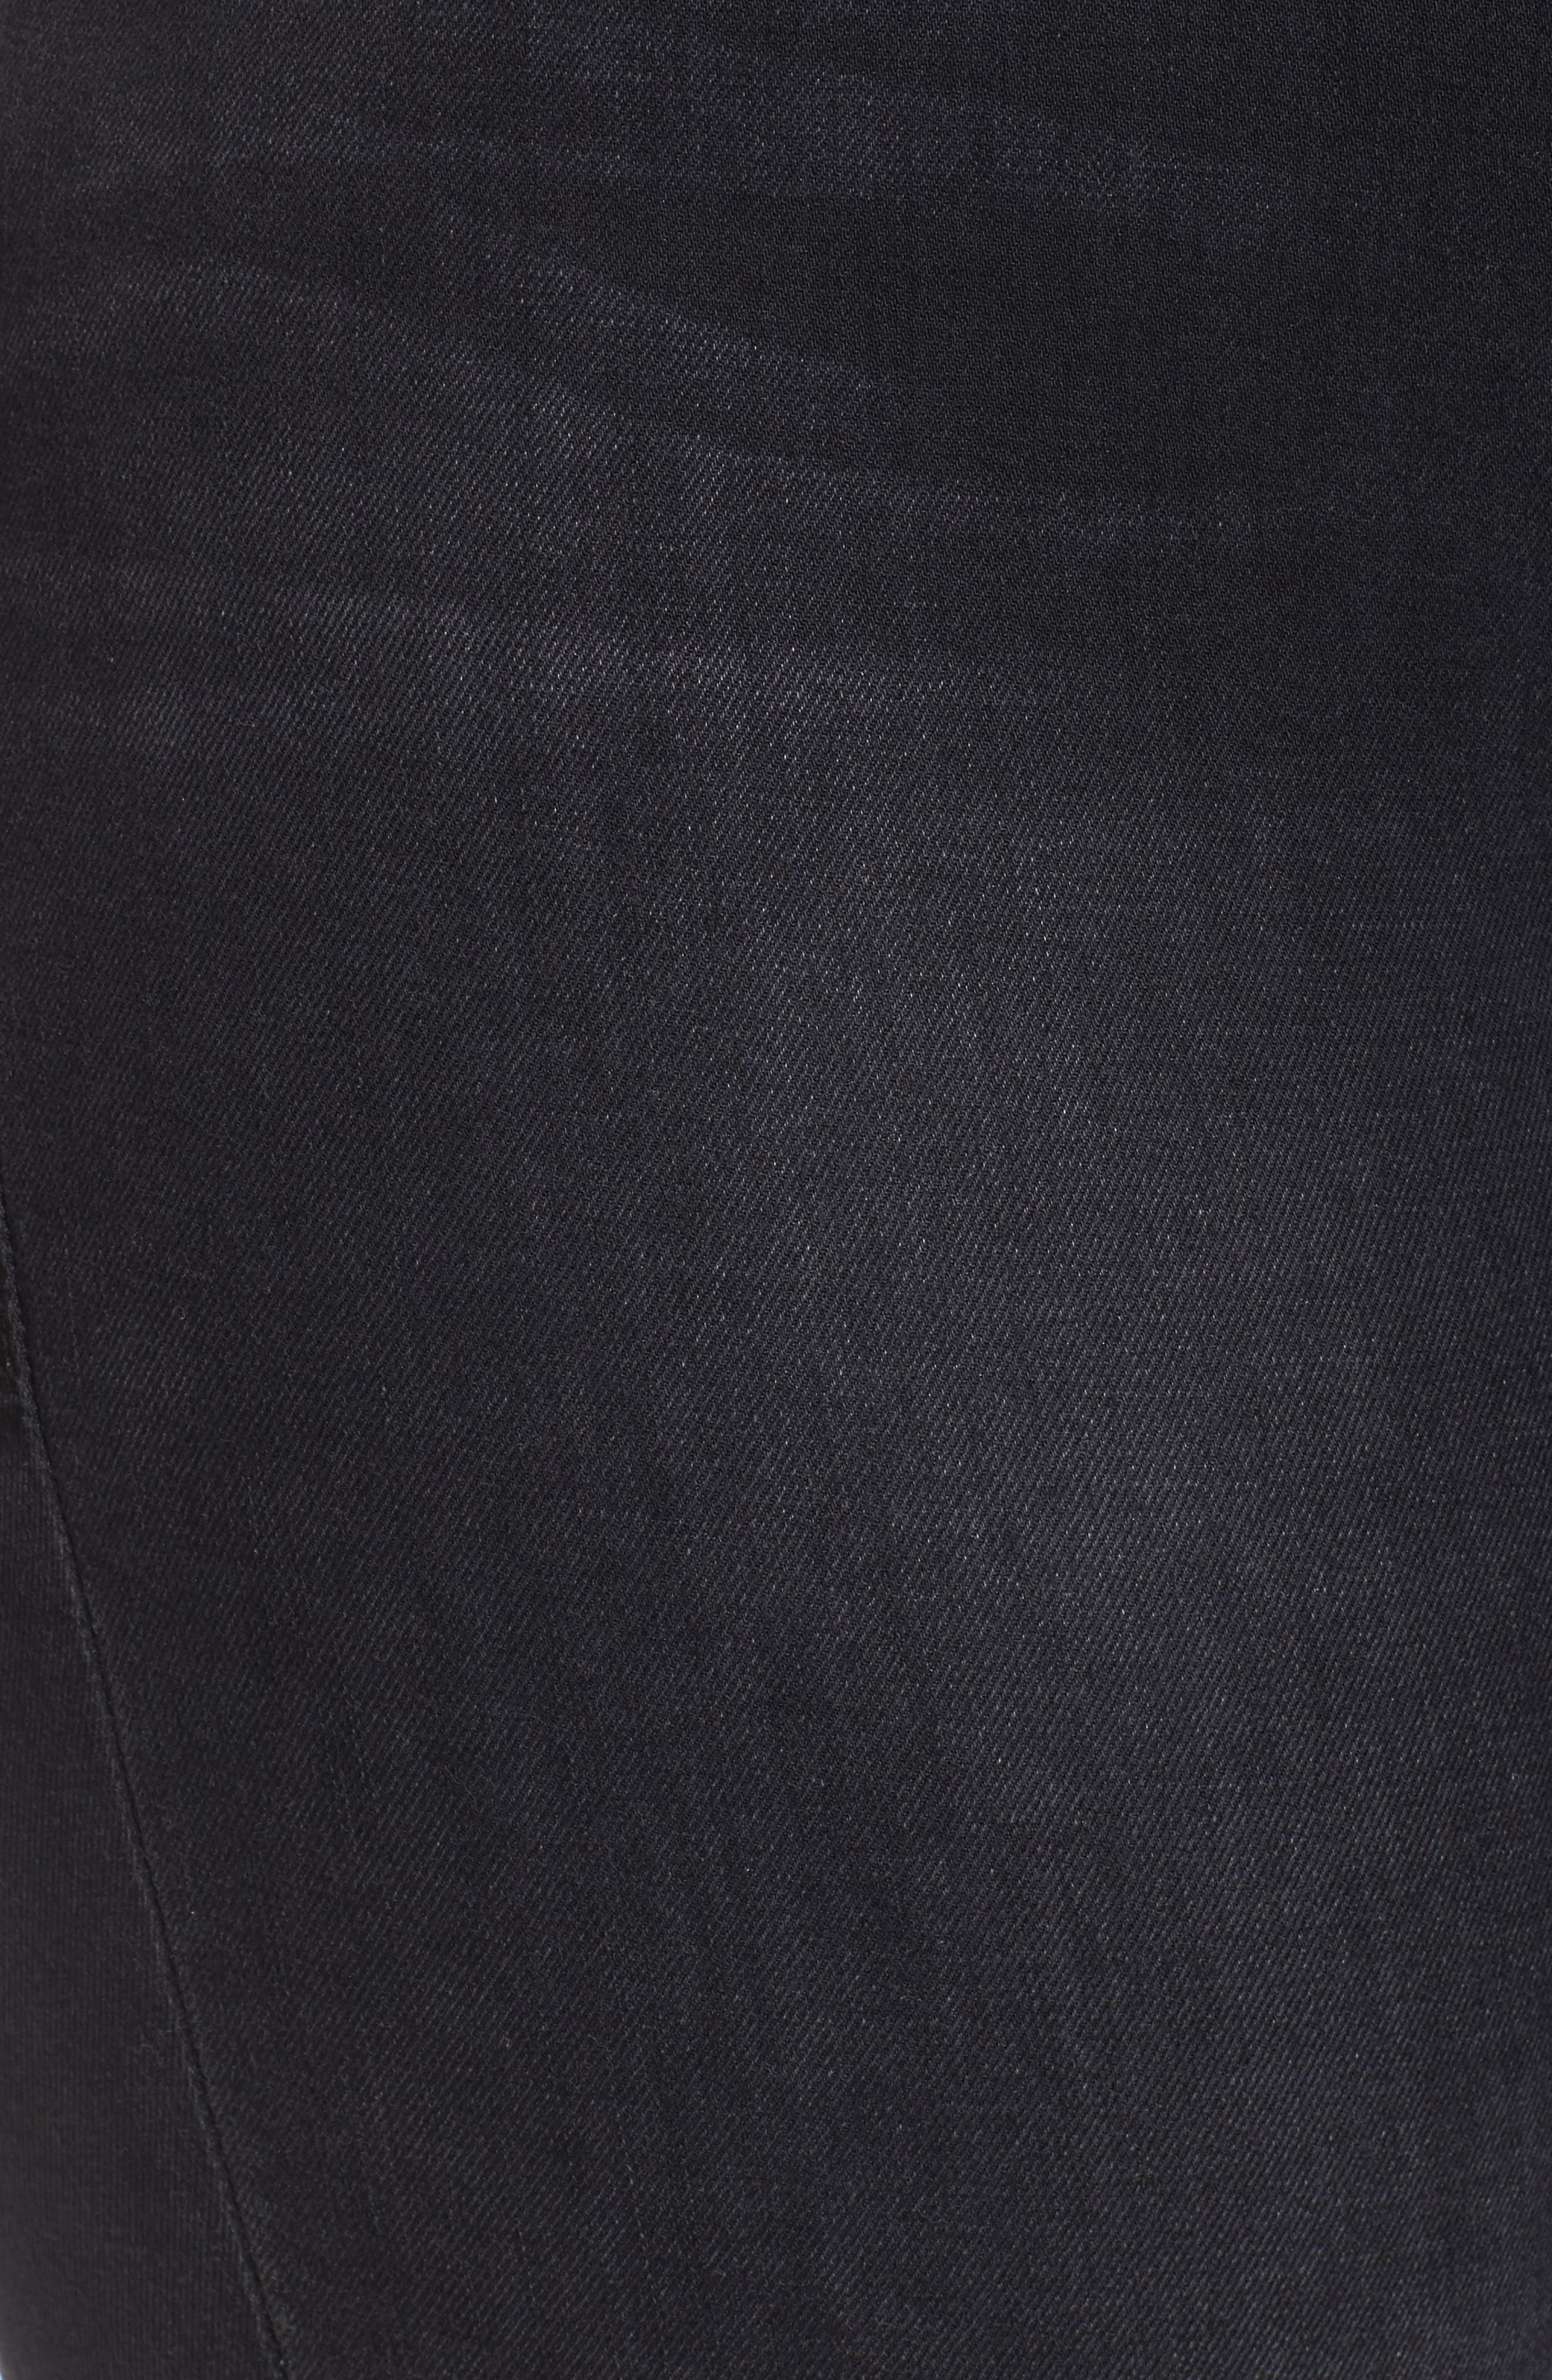 Alternate Image 4  - Good American Good Straight Ankle Lace Skinny Jeans (Black 010) (Extended Sizes)